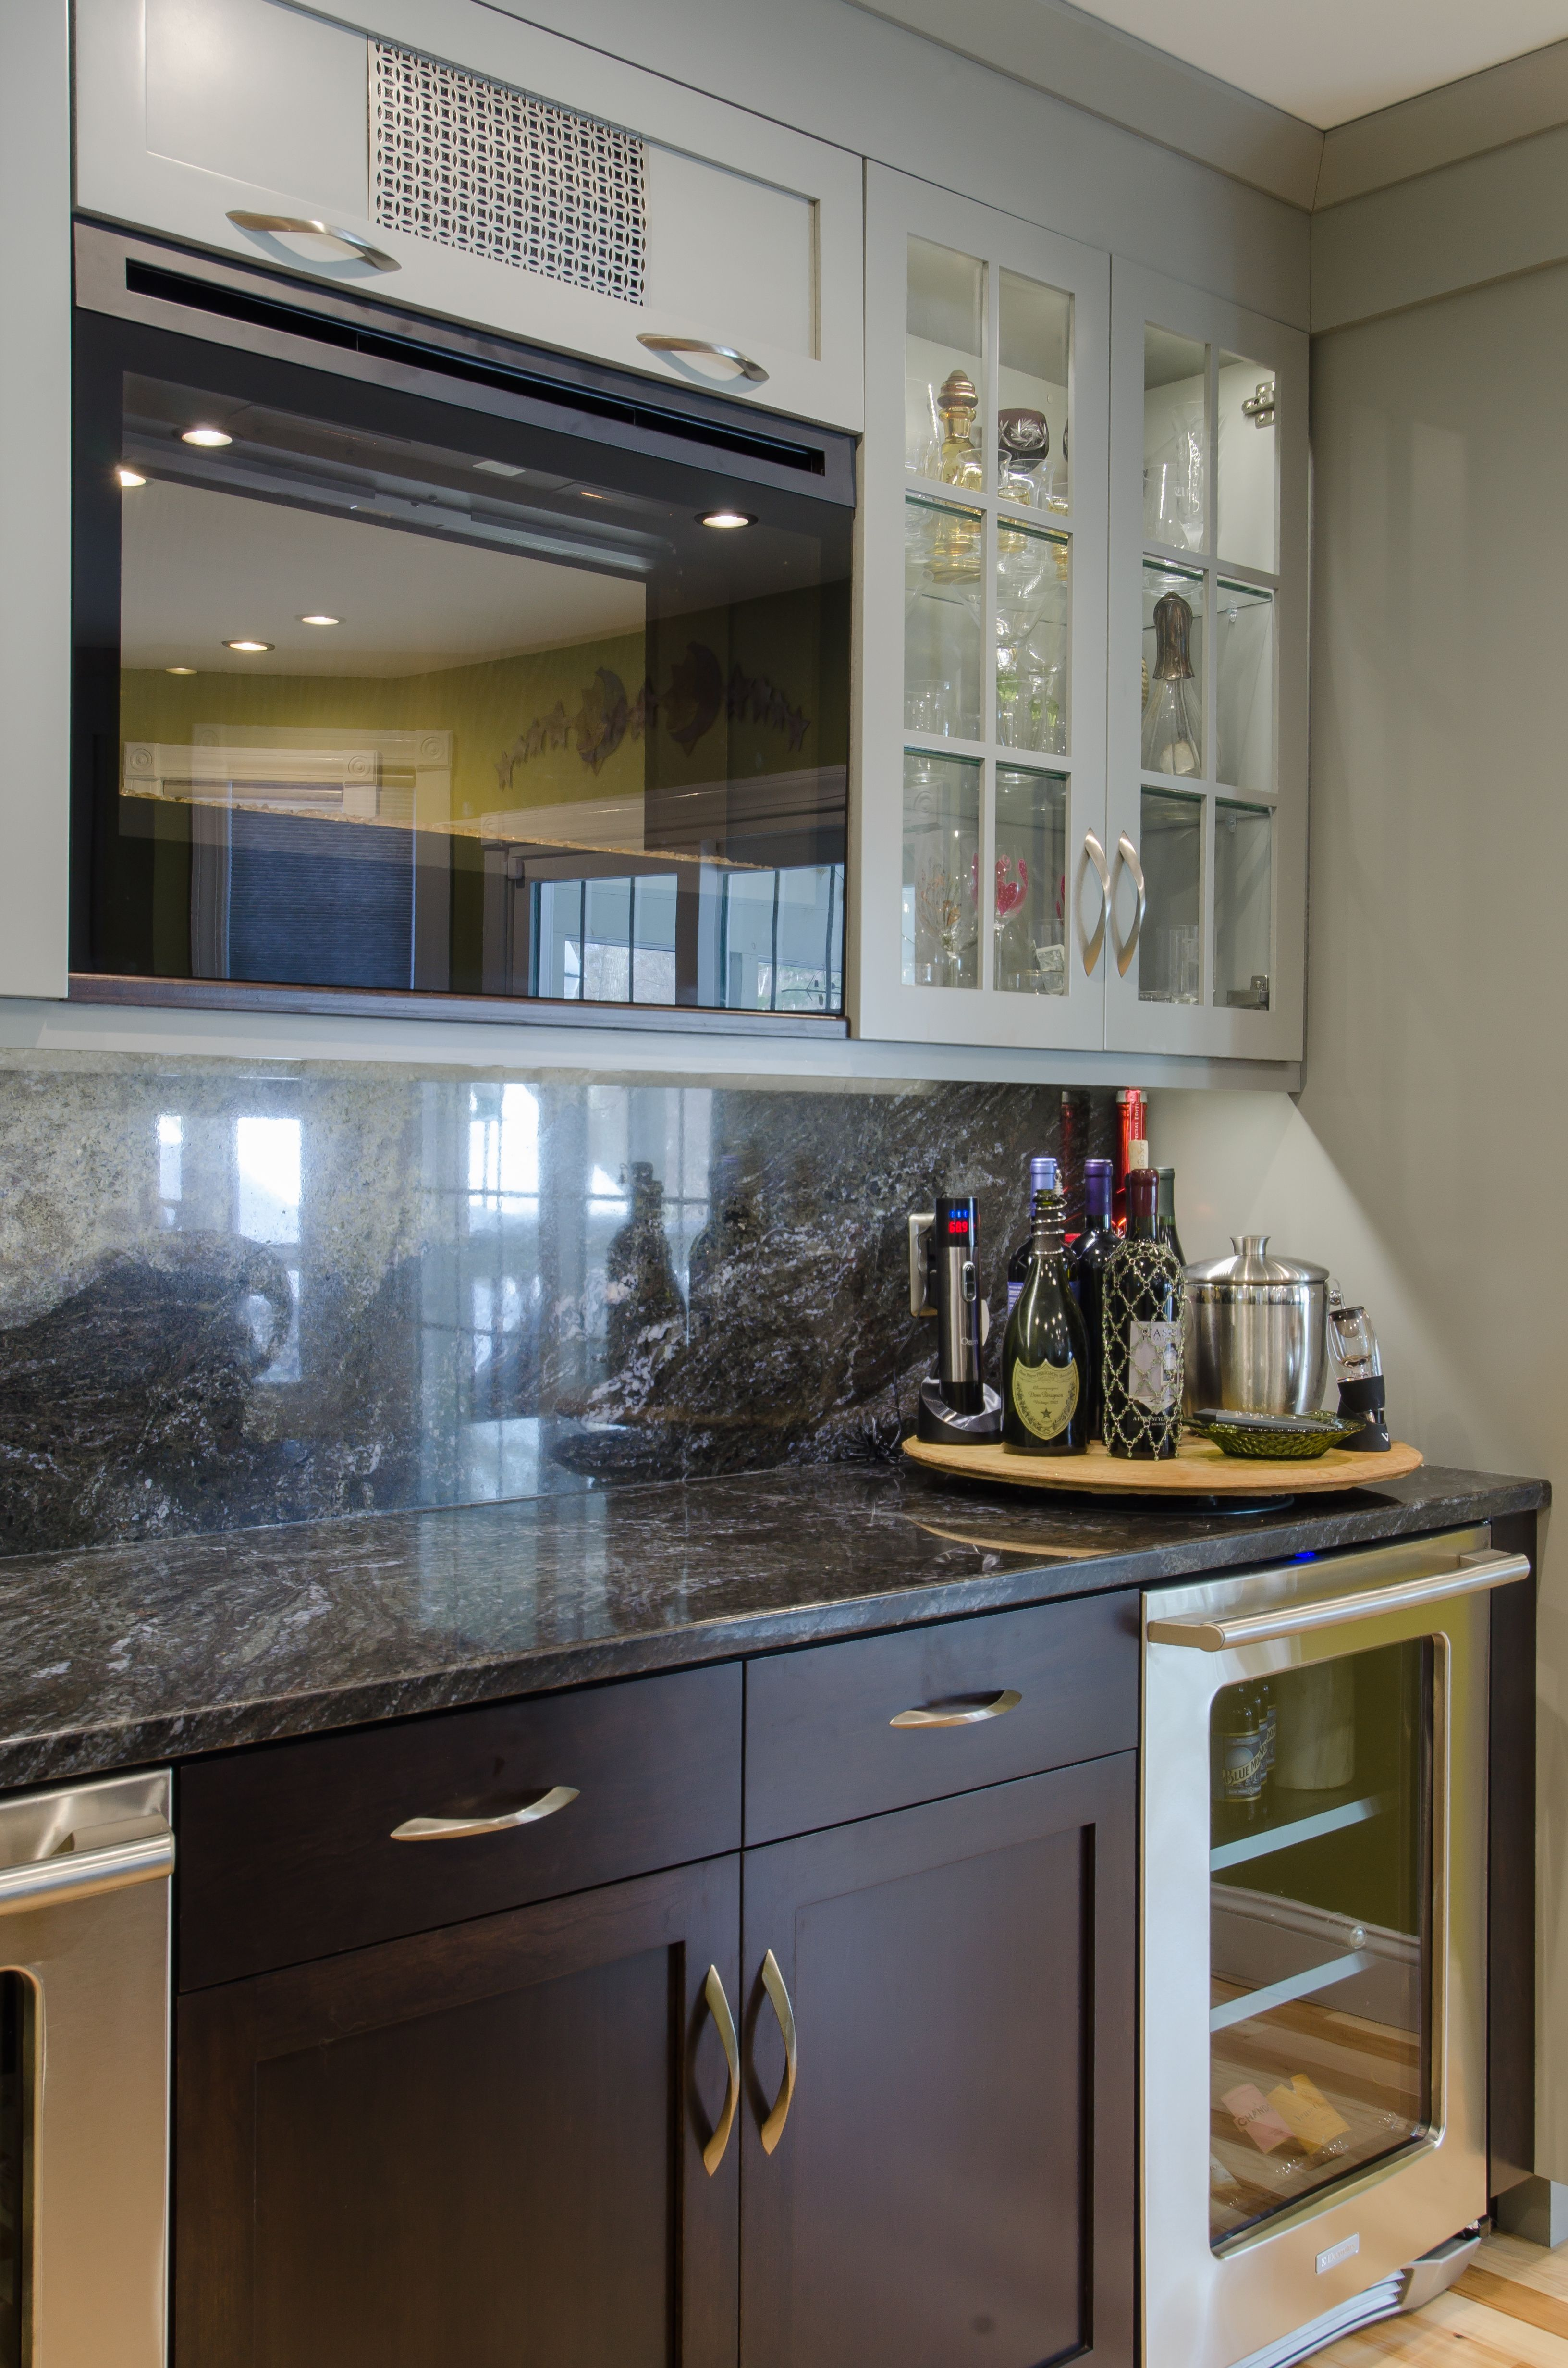 Bar  Built In Wine And Beverage Fridge, Glass Wall Cabinets To Display  Glasses,